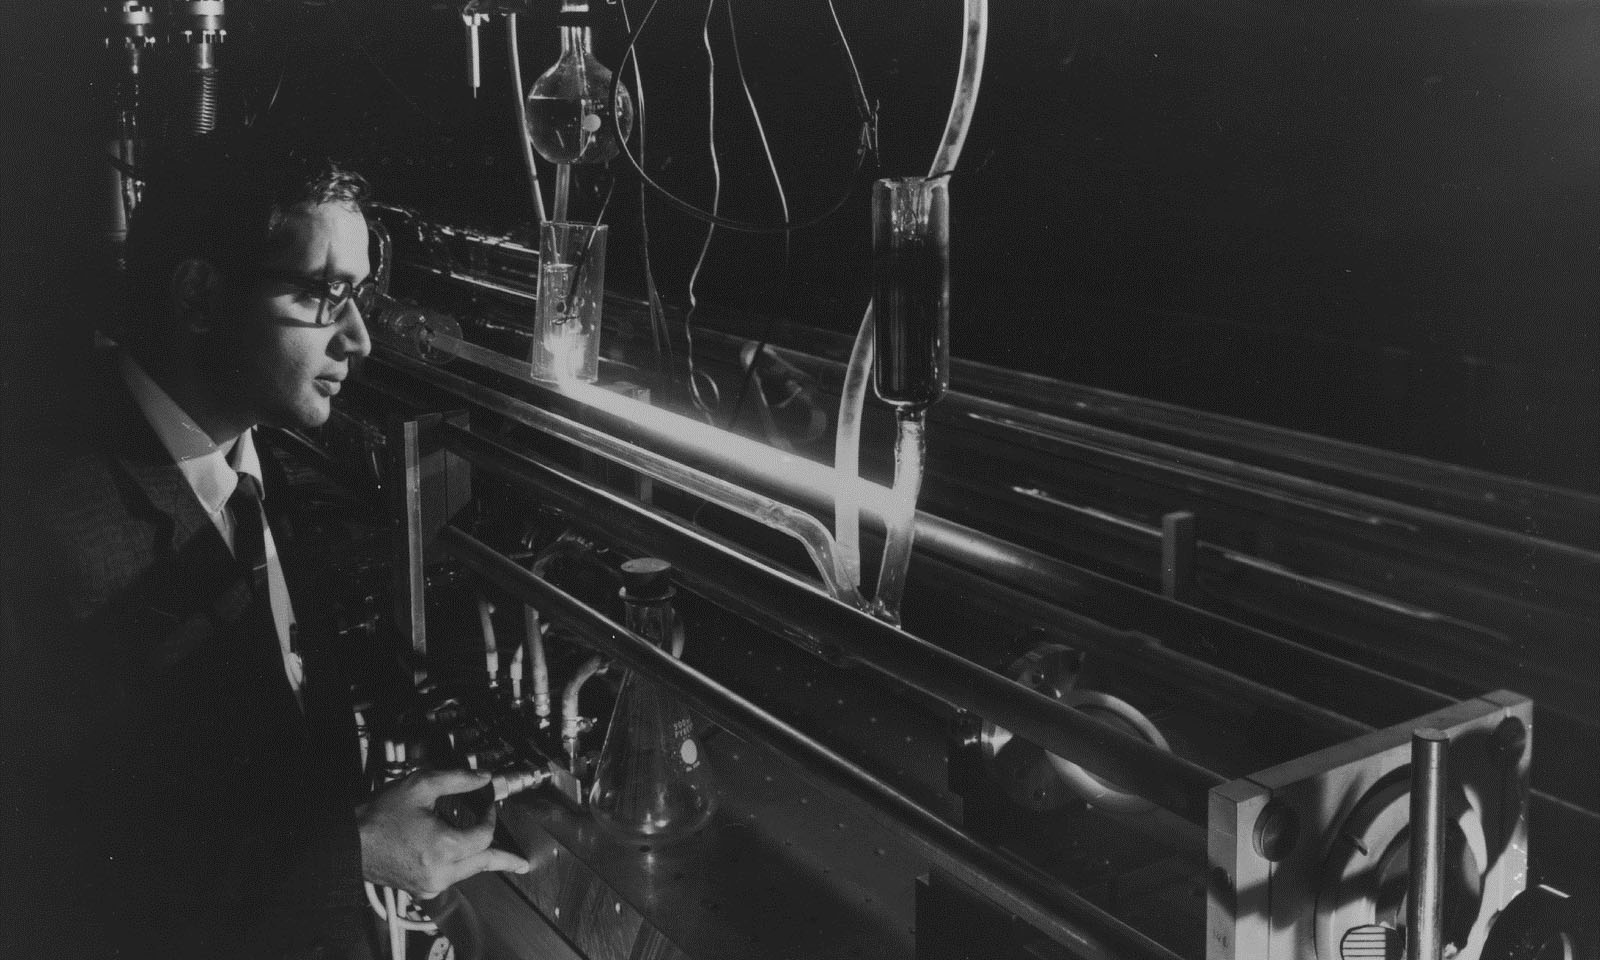 History of Laser Cutting: From MASERs to CO2 Laser Cutting